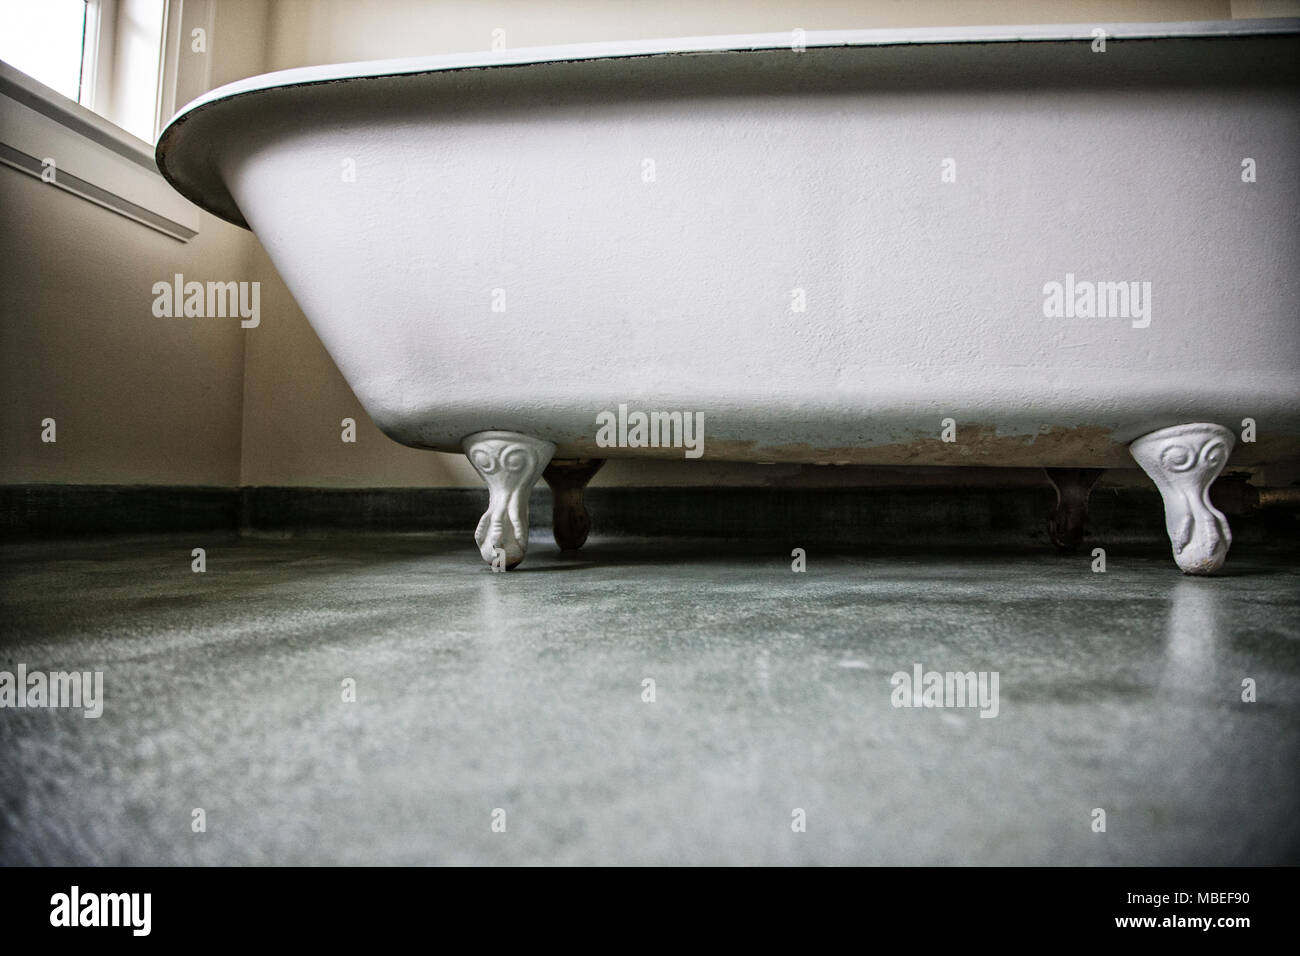 Claw foot bath tub in a remodeled home Stock Photo: 179184236 - Alamy